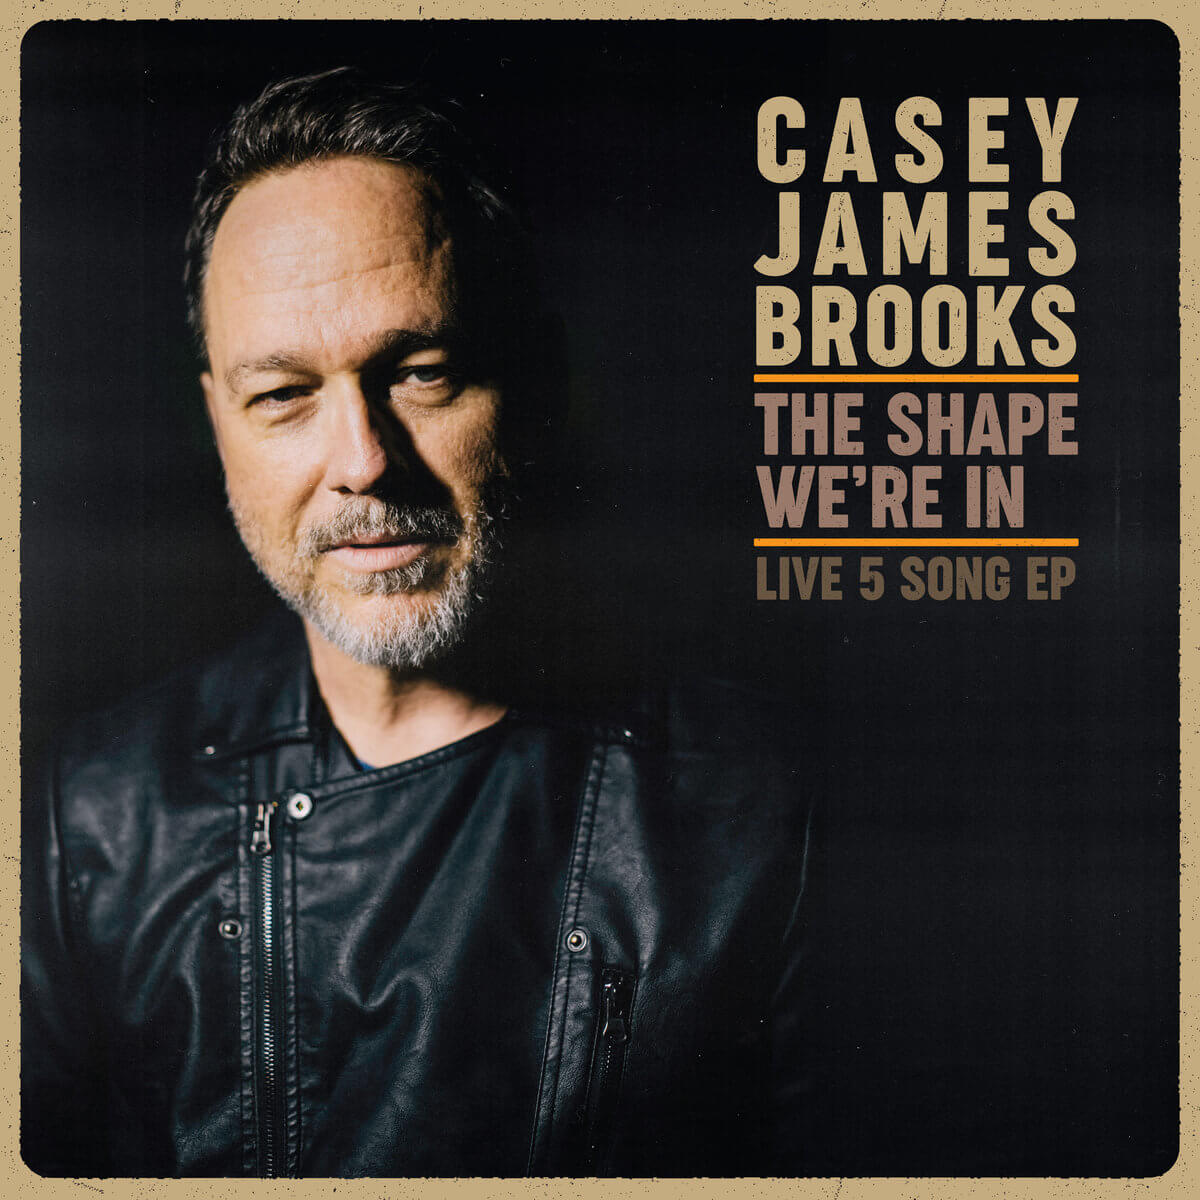 Casey James Brooks - The Shape We're In